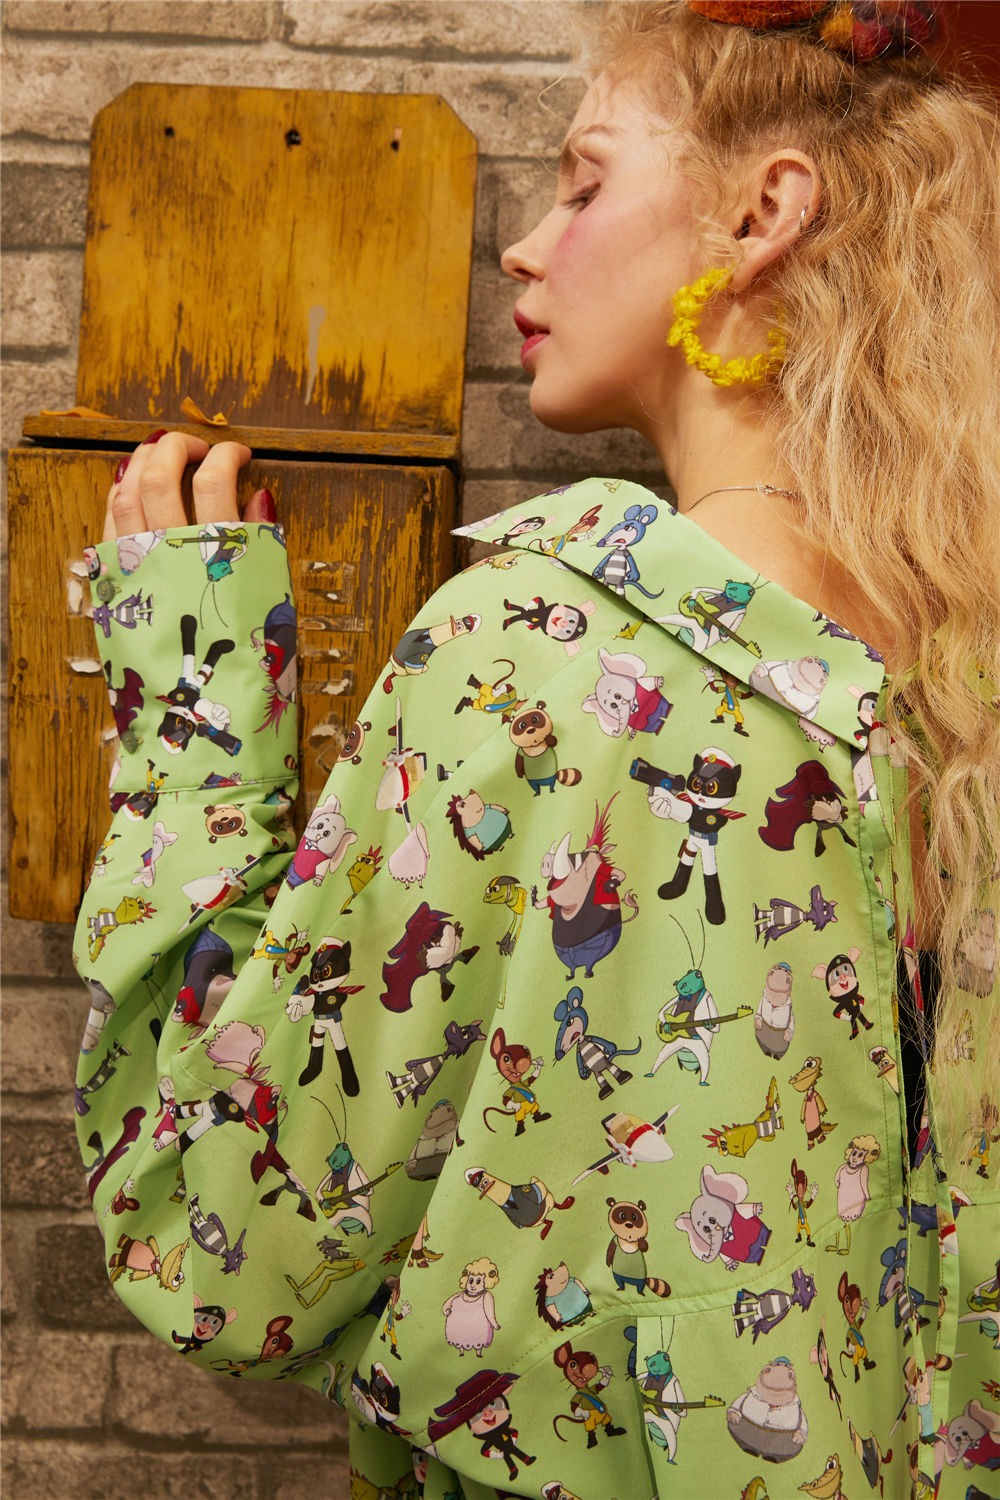 ELFSACK Green Cartoon Print Cut Out Shirts Women 2020 Spring New Lace UP Back Long Sleeve Casual Office Ladies Daily Tops